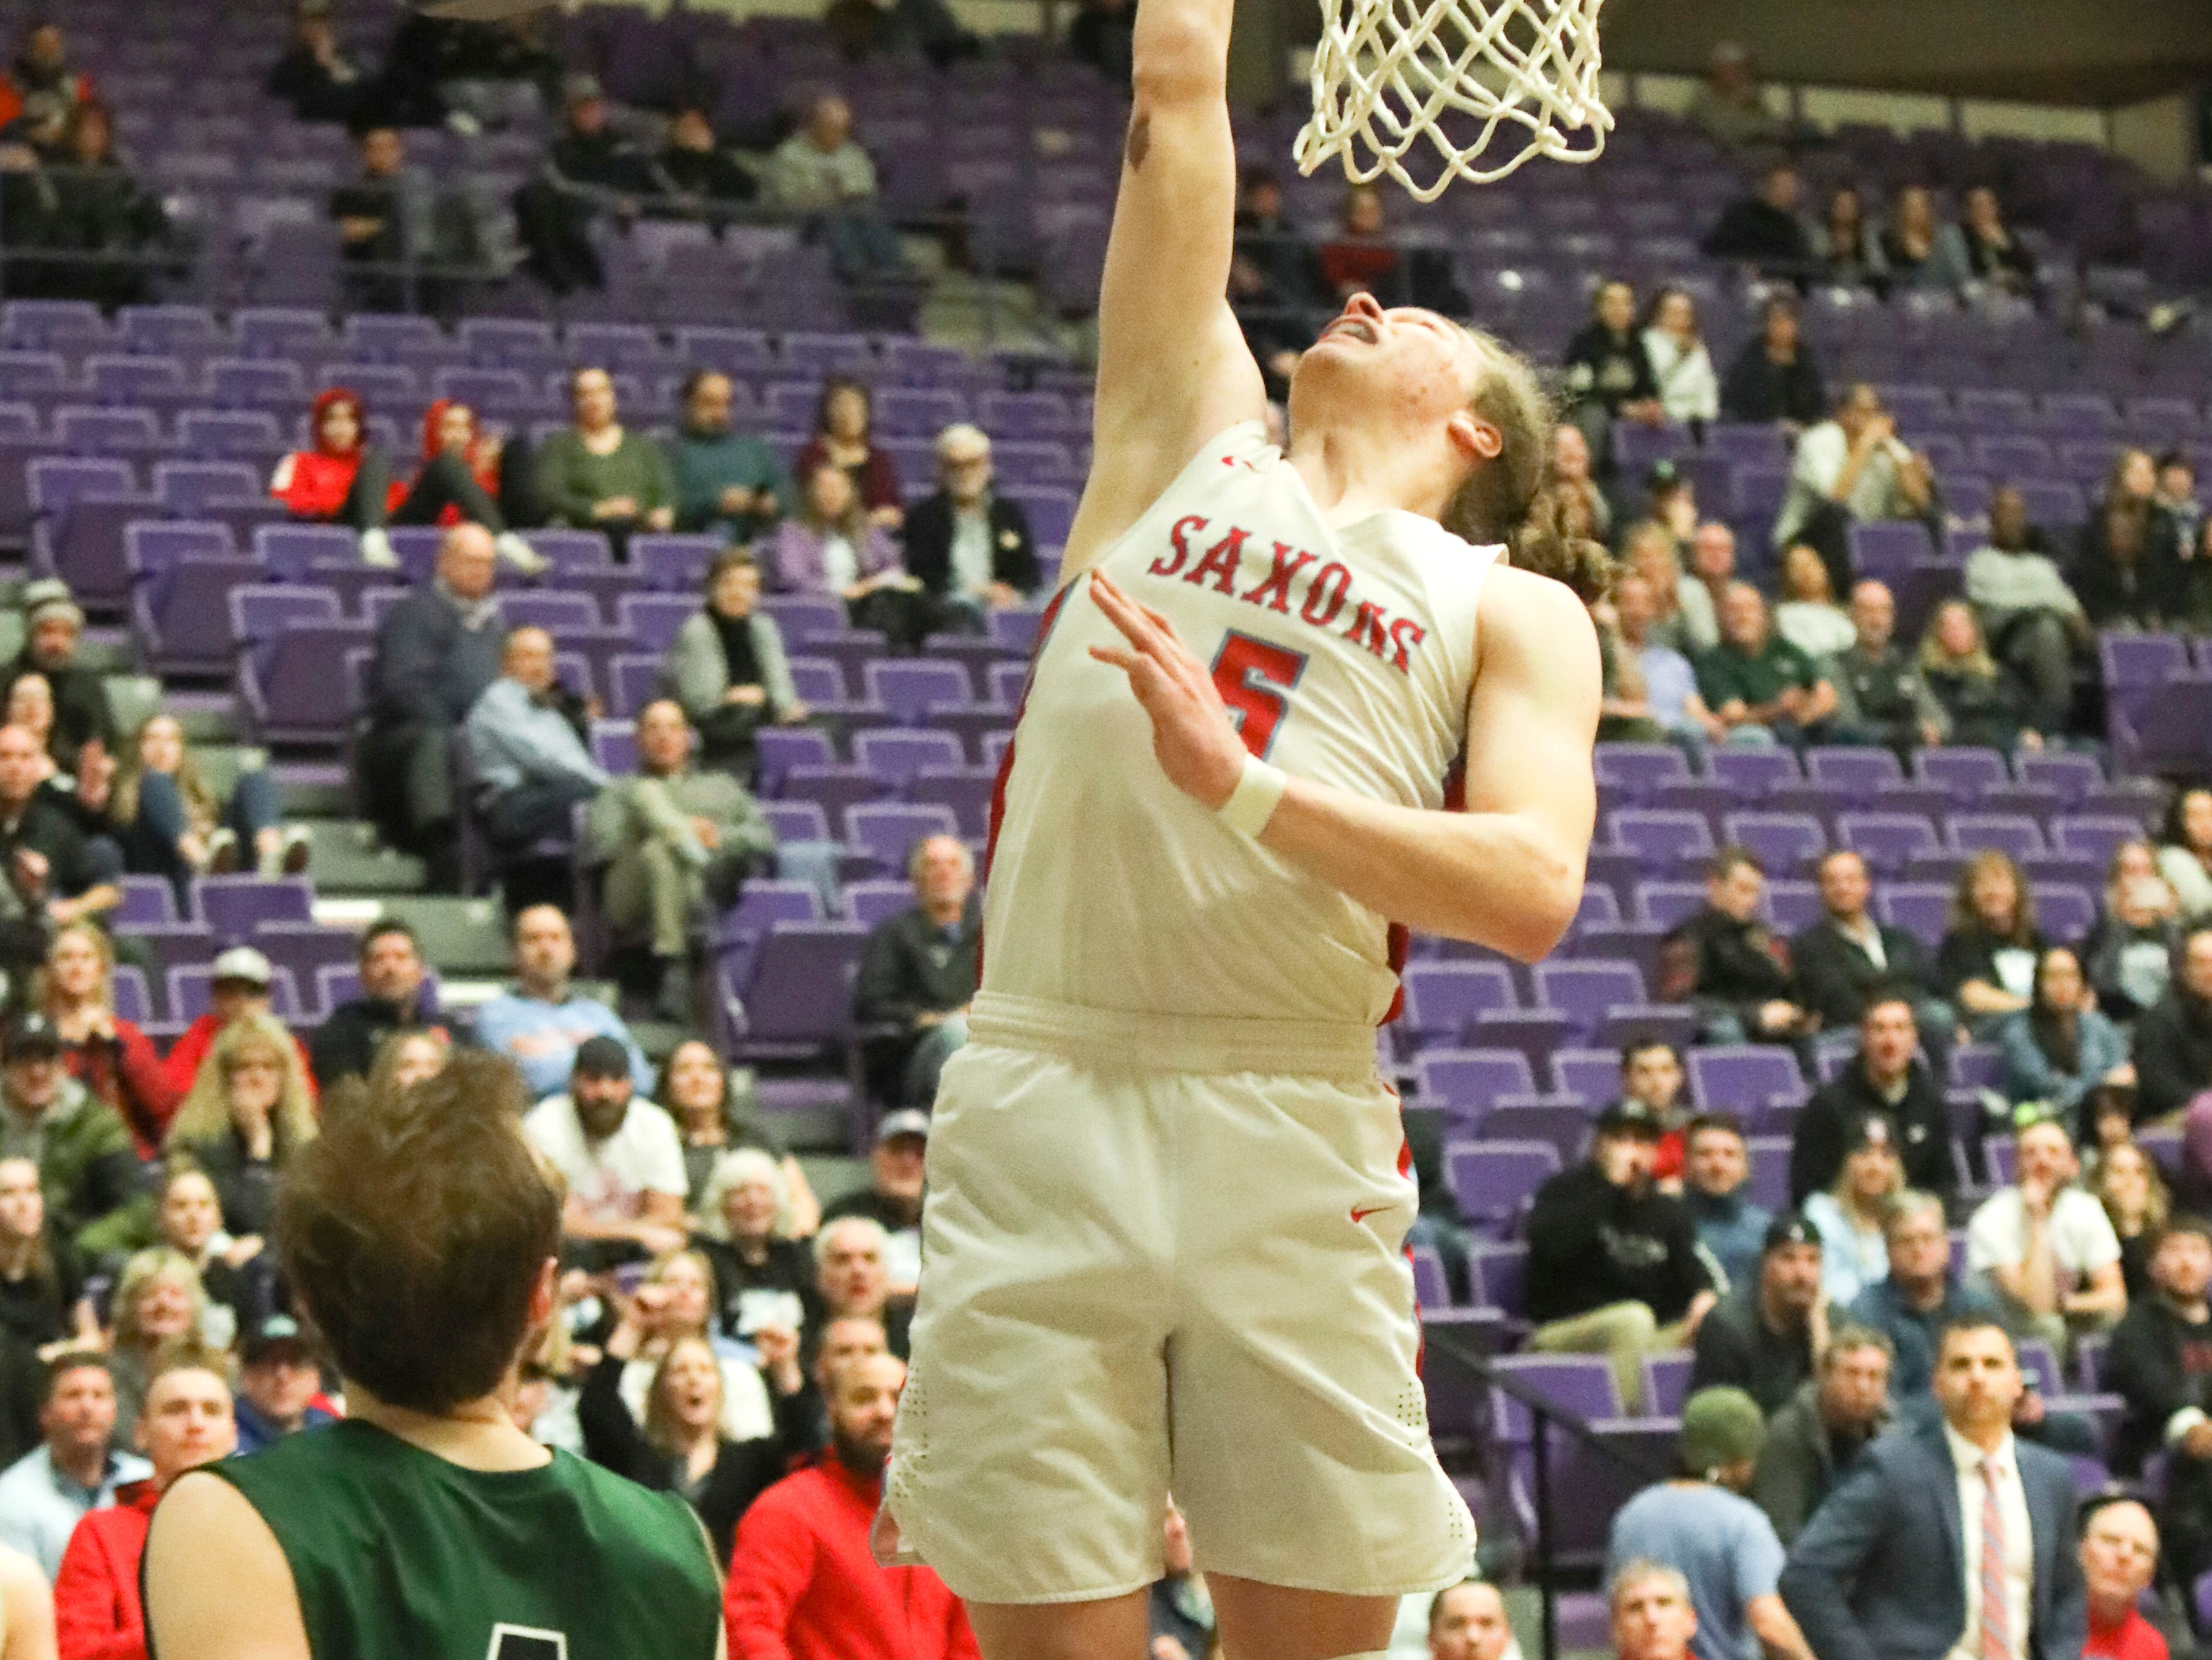 South Salem's Ryan Brown (5) makes a layup against Tigard during the OSAA 6A boys basketball state tournament quarterfinal on Wednesday, March 6 at Chiles Center.